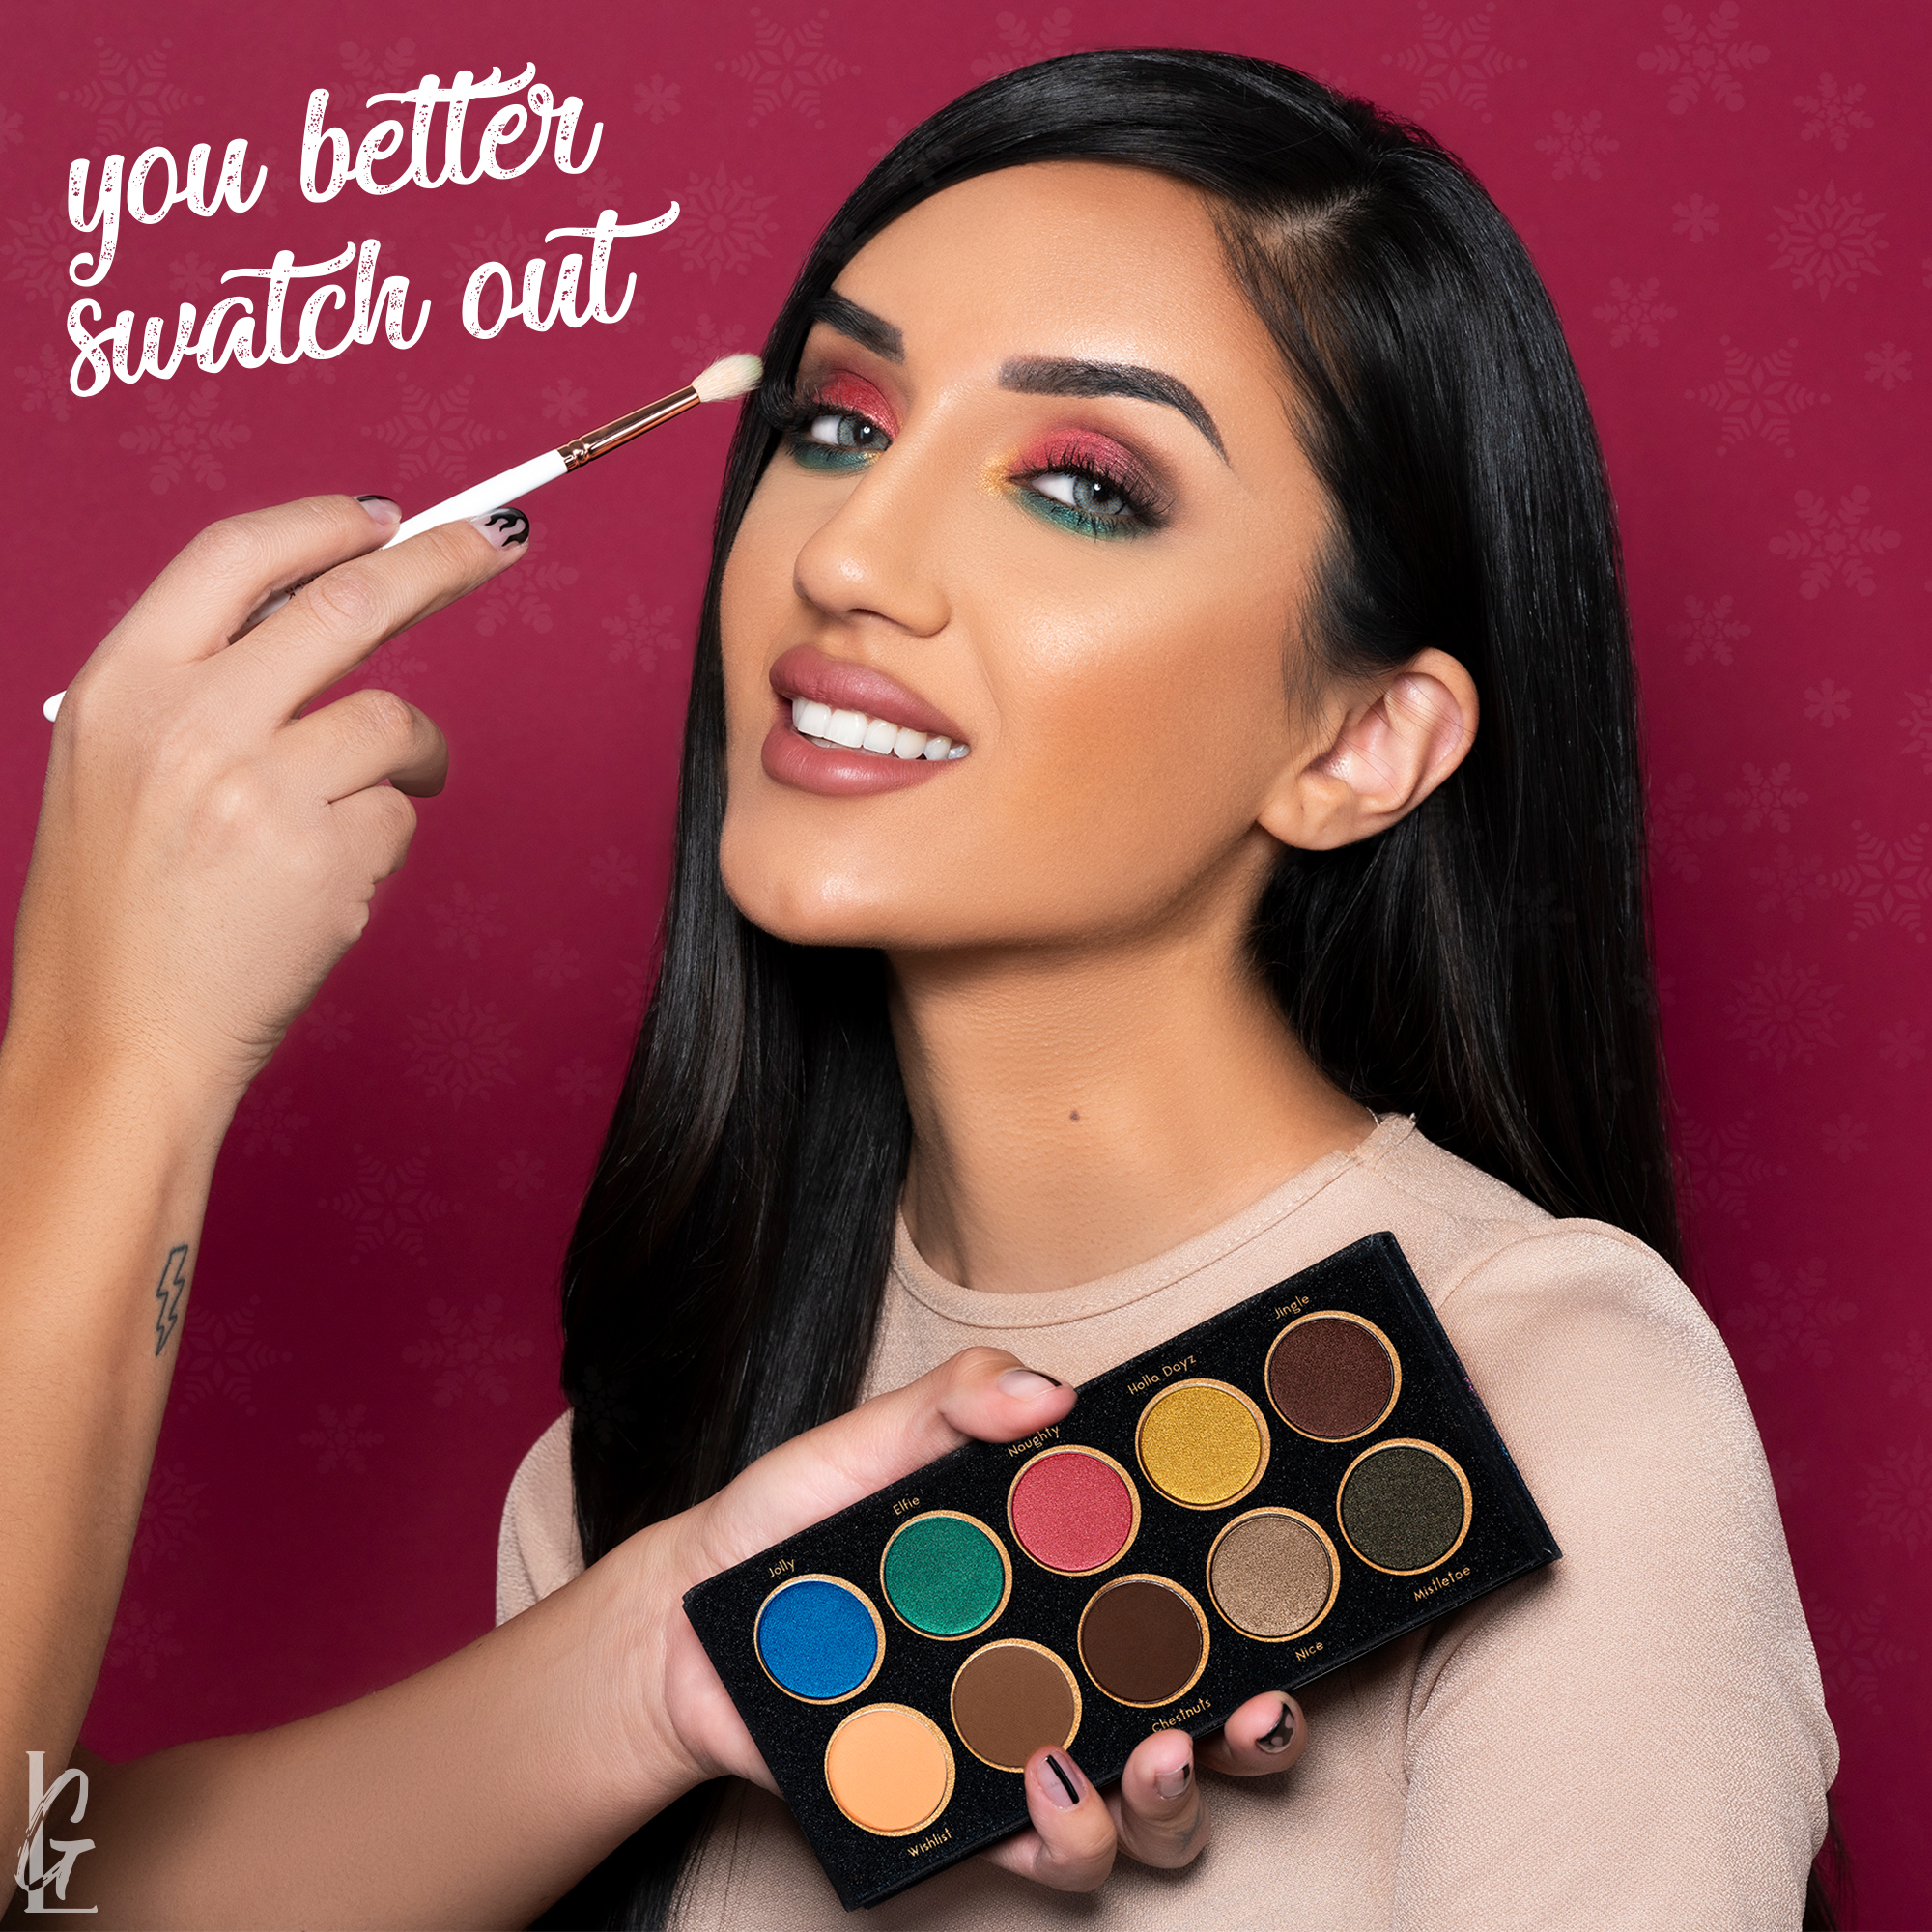 """You Better Swatch Out"" with our New ShadowMe Palette!"